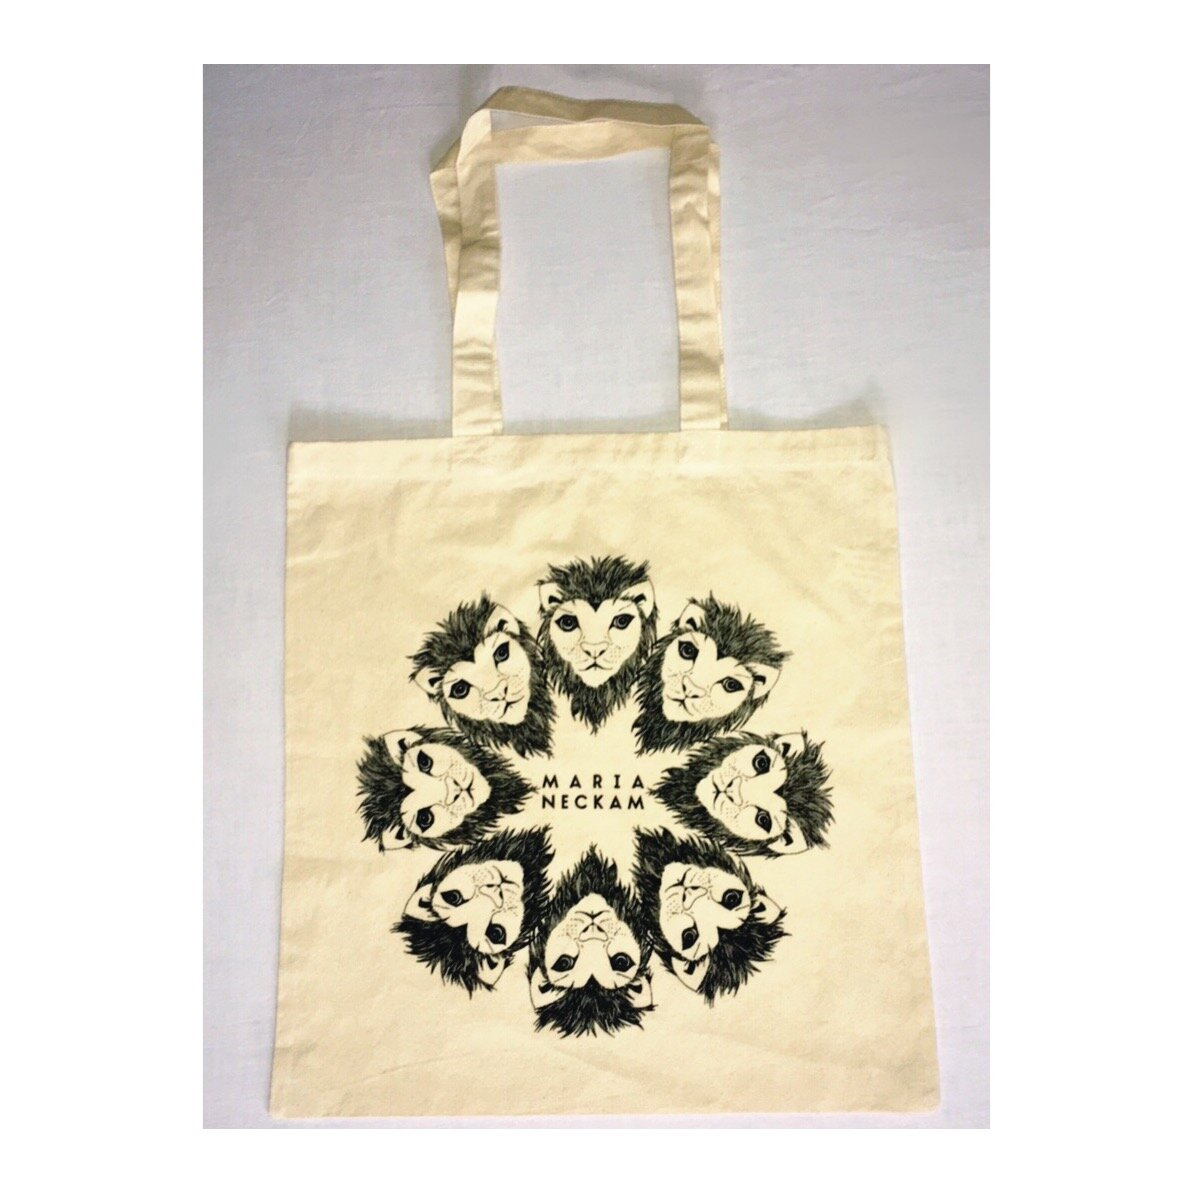 Maria NeckamNatural Tote Bag - $20Available in black & natural (off-white) color.Screen-printed in Brooklyn.Multifunctional! Rock it as your all-around bag, grocery shopping bag, or drum-stick-carrier ...